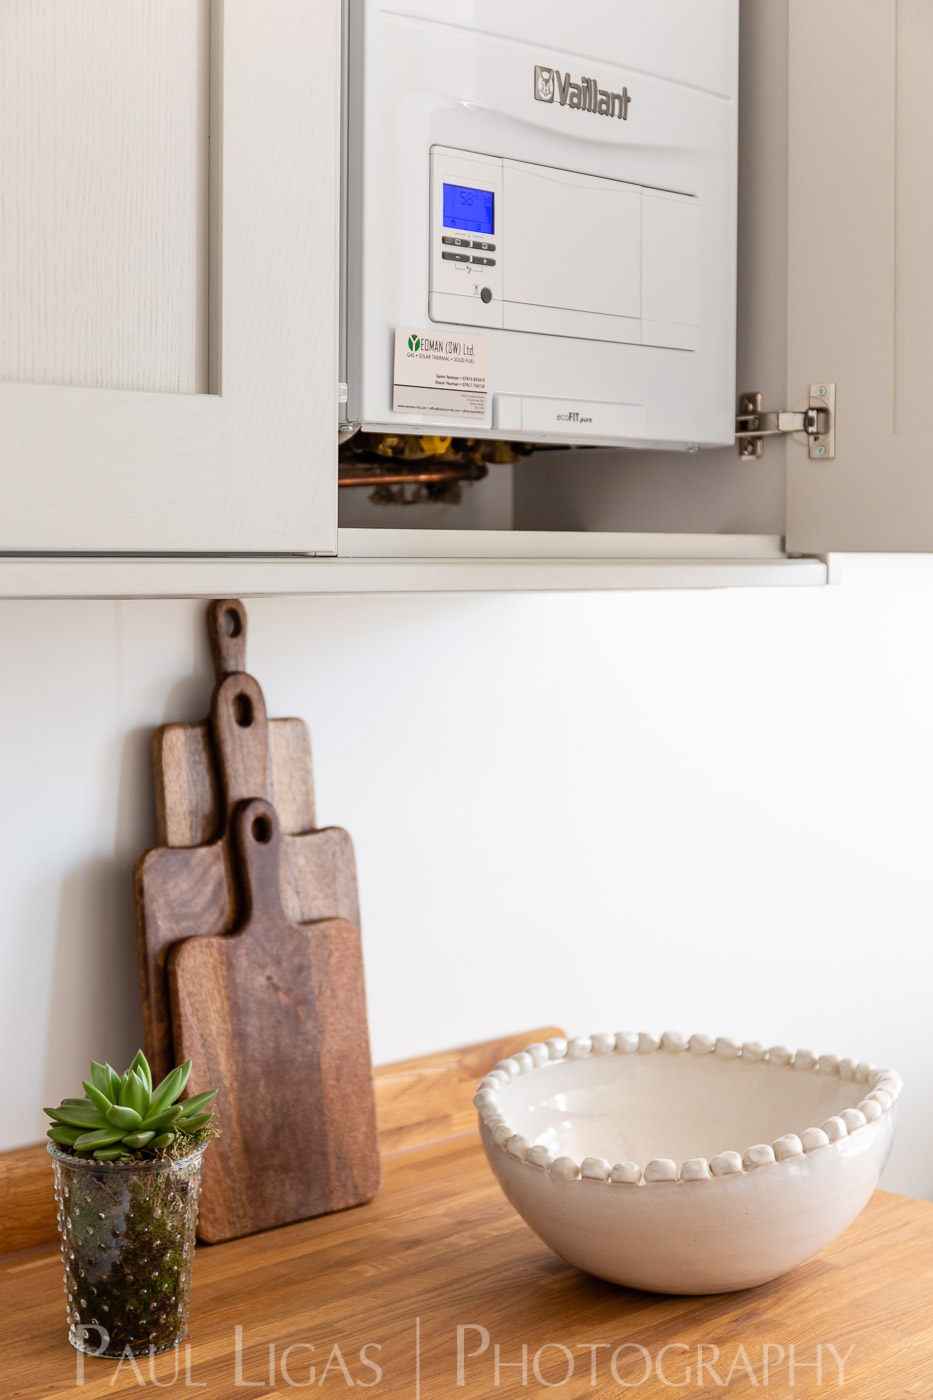 Yeoman SW Ltd property interior design photographer plumbing heating commercial Herefordshire 5270